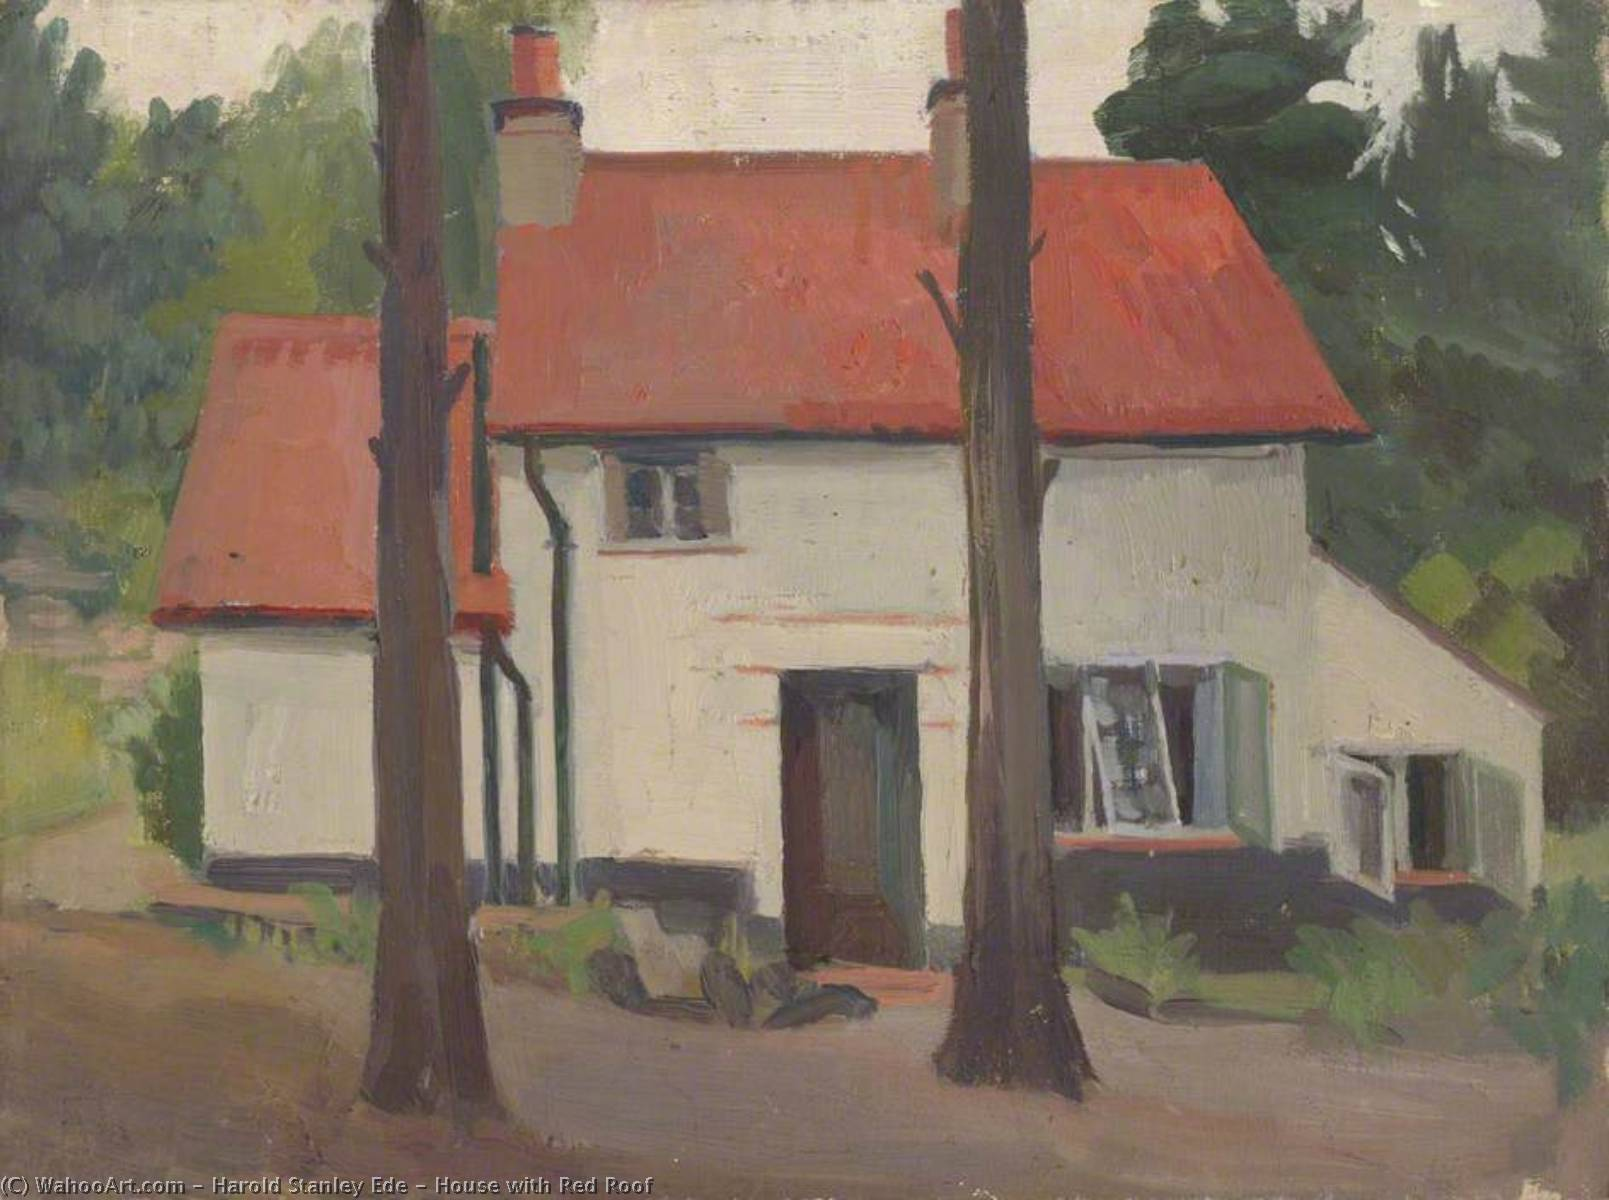 House with Red Roof, 1928 by Harold Stanley Ede | WahooArt.com